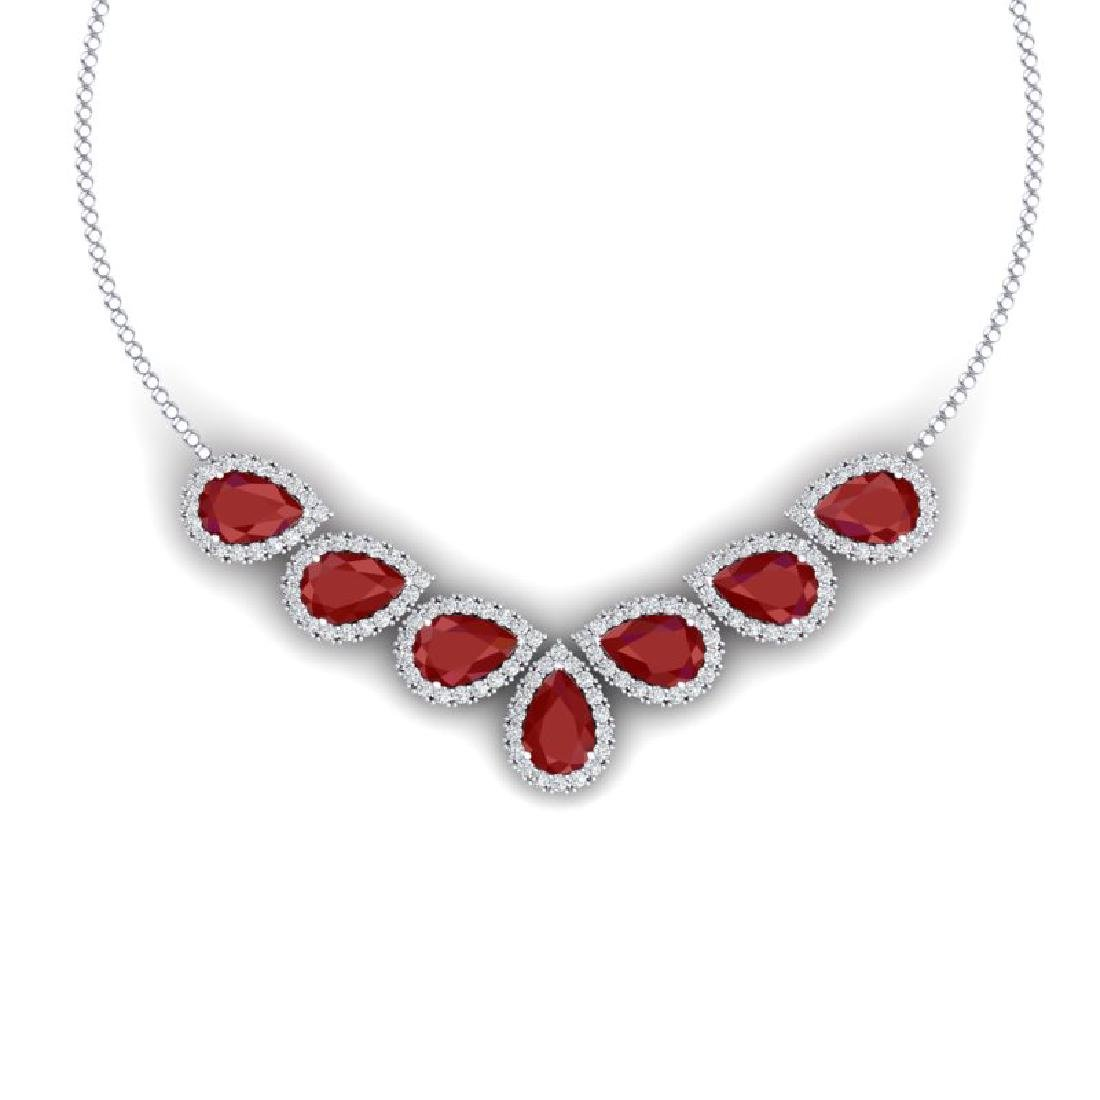 34.72 CTW Royalty Ruby & VS Diamond Necklace 18K White